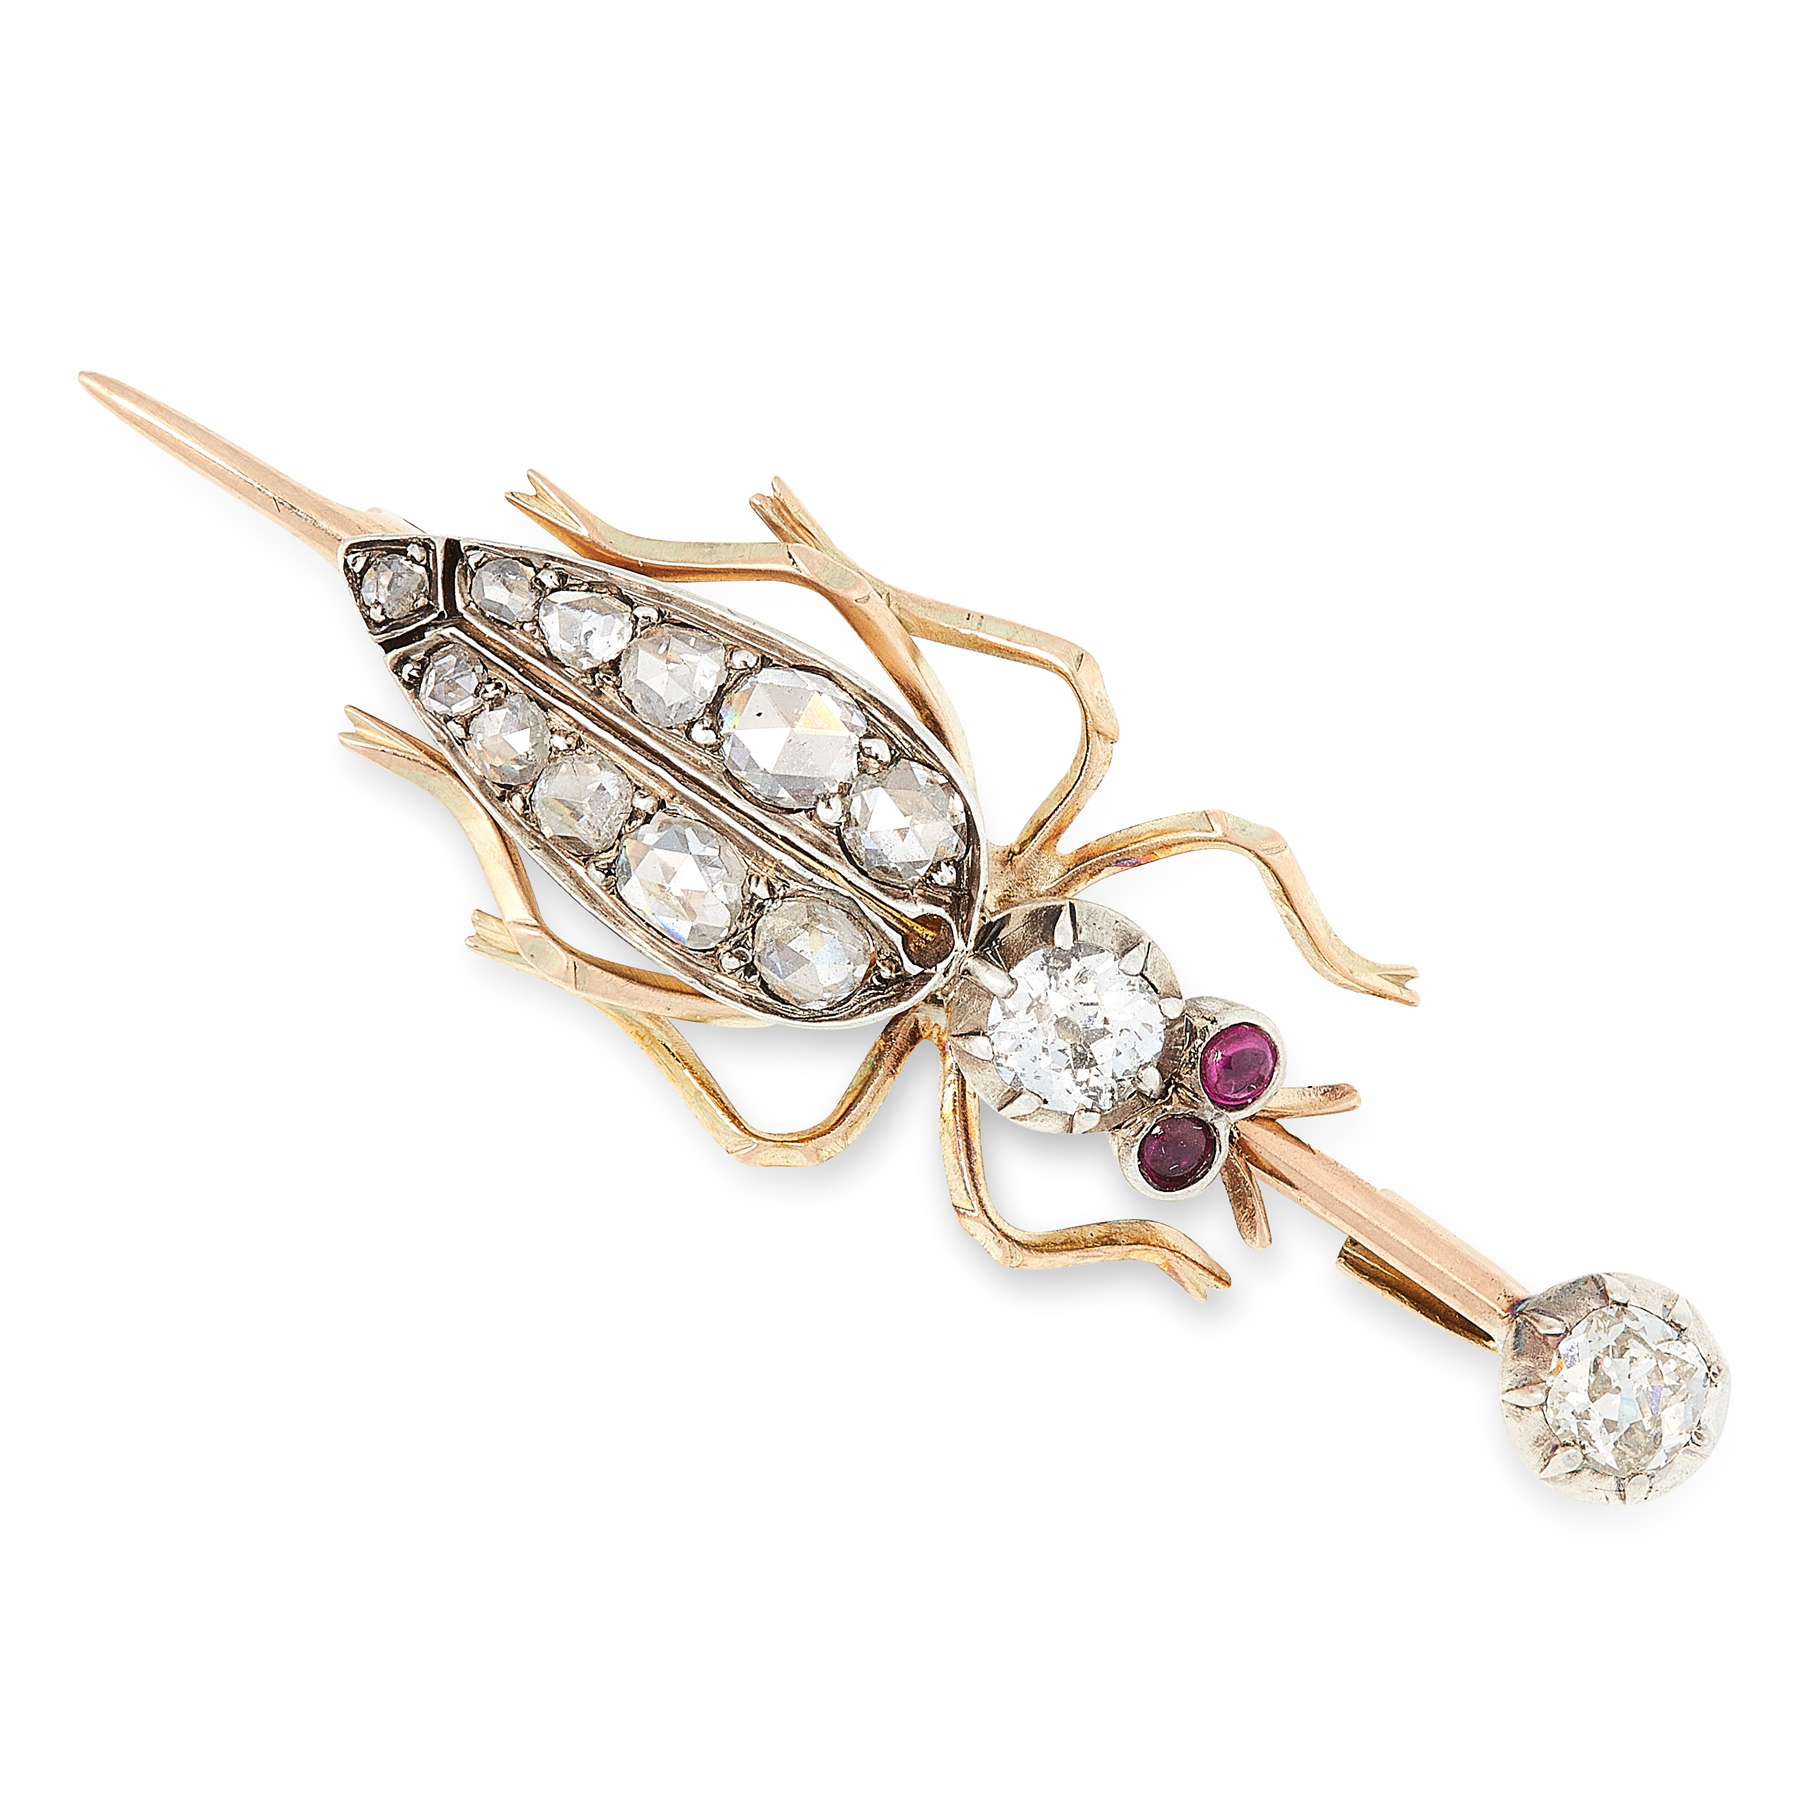 AN ANTIQUE DIAMOND AND RUBY BEETLE BROOCH, LATE 19TH CENTURY in high carat yellow gold and silver,